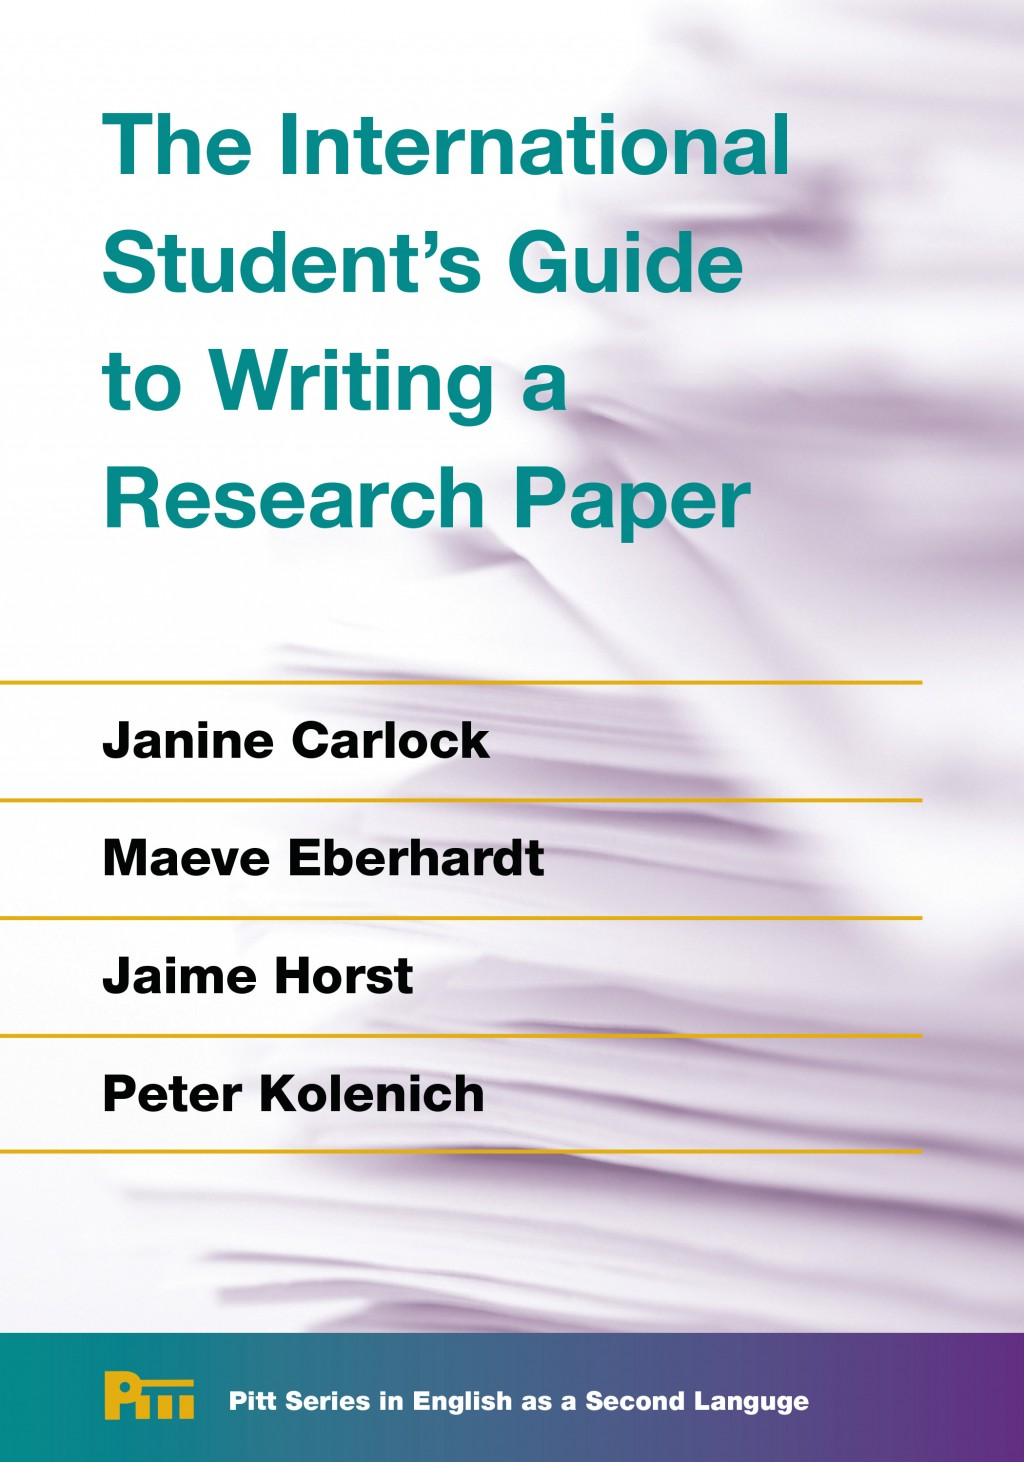 013 Research Paper Striking Writing Papers Lester 16th Edition A Complete Guide James D. Large